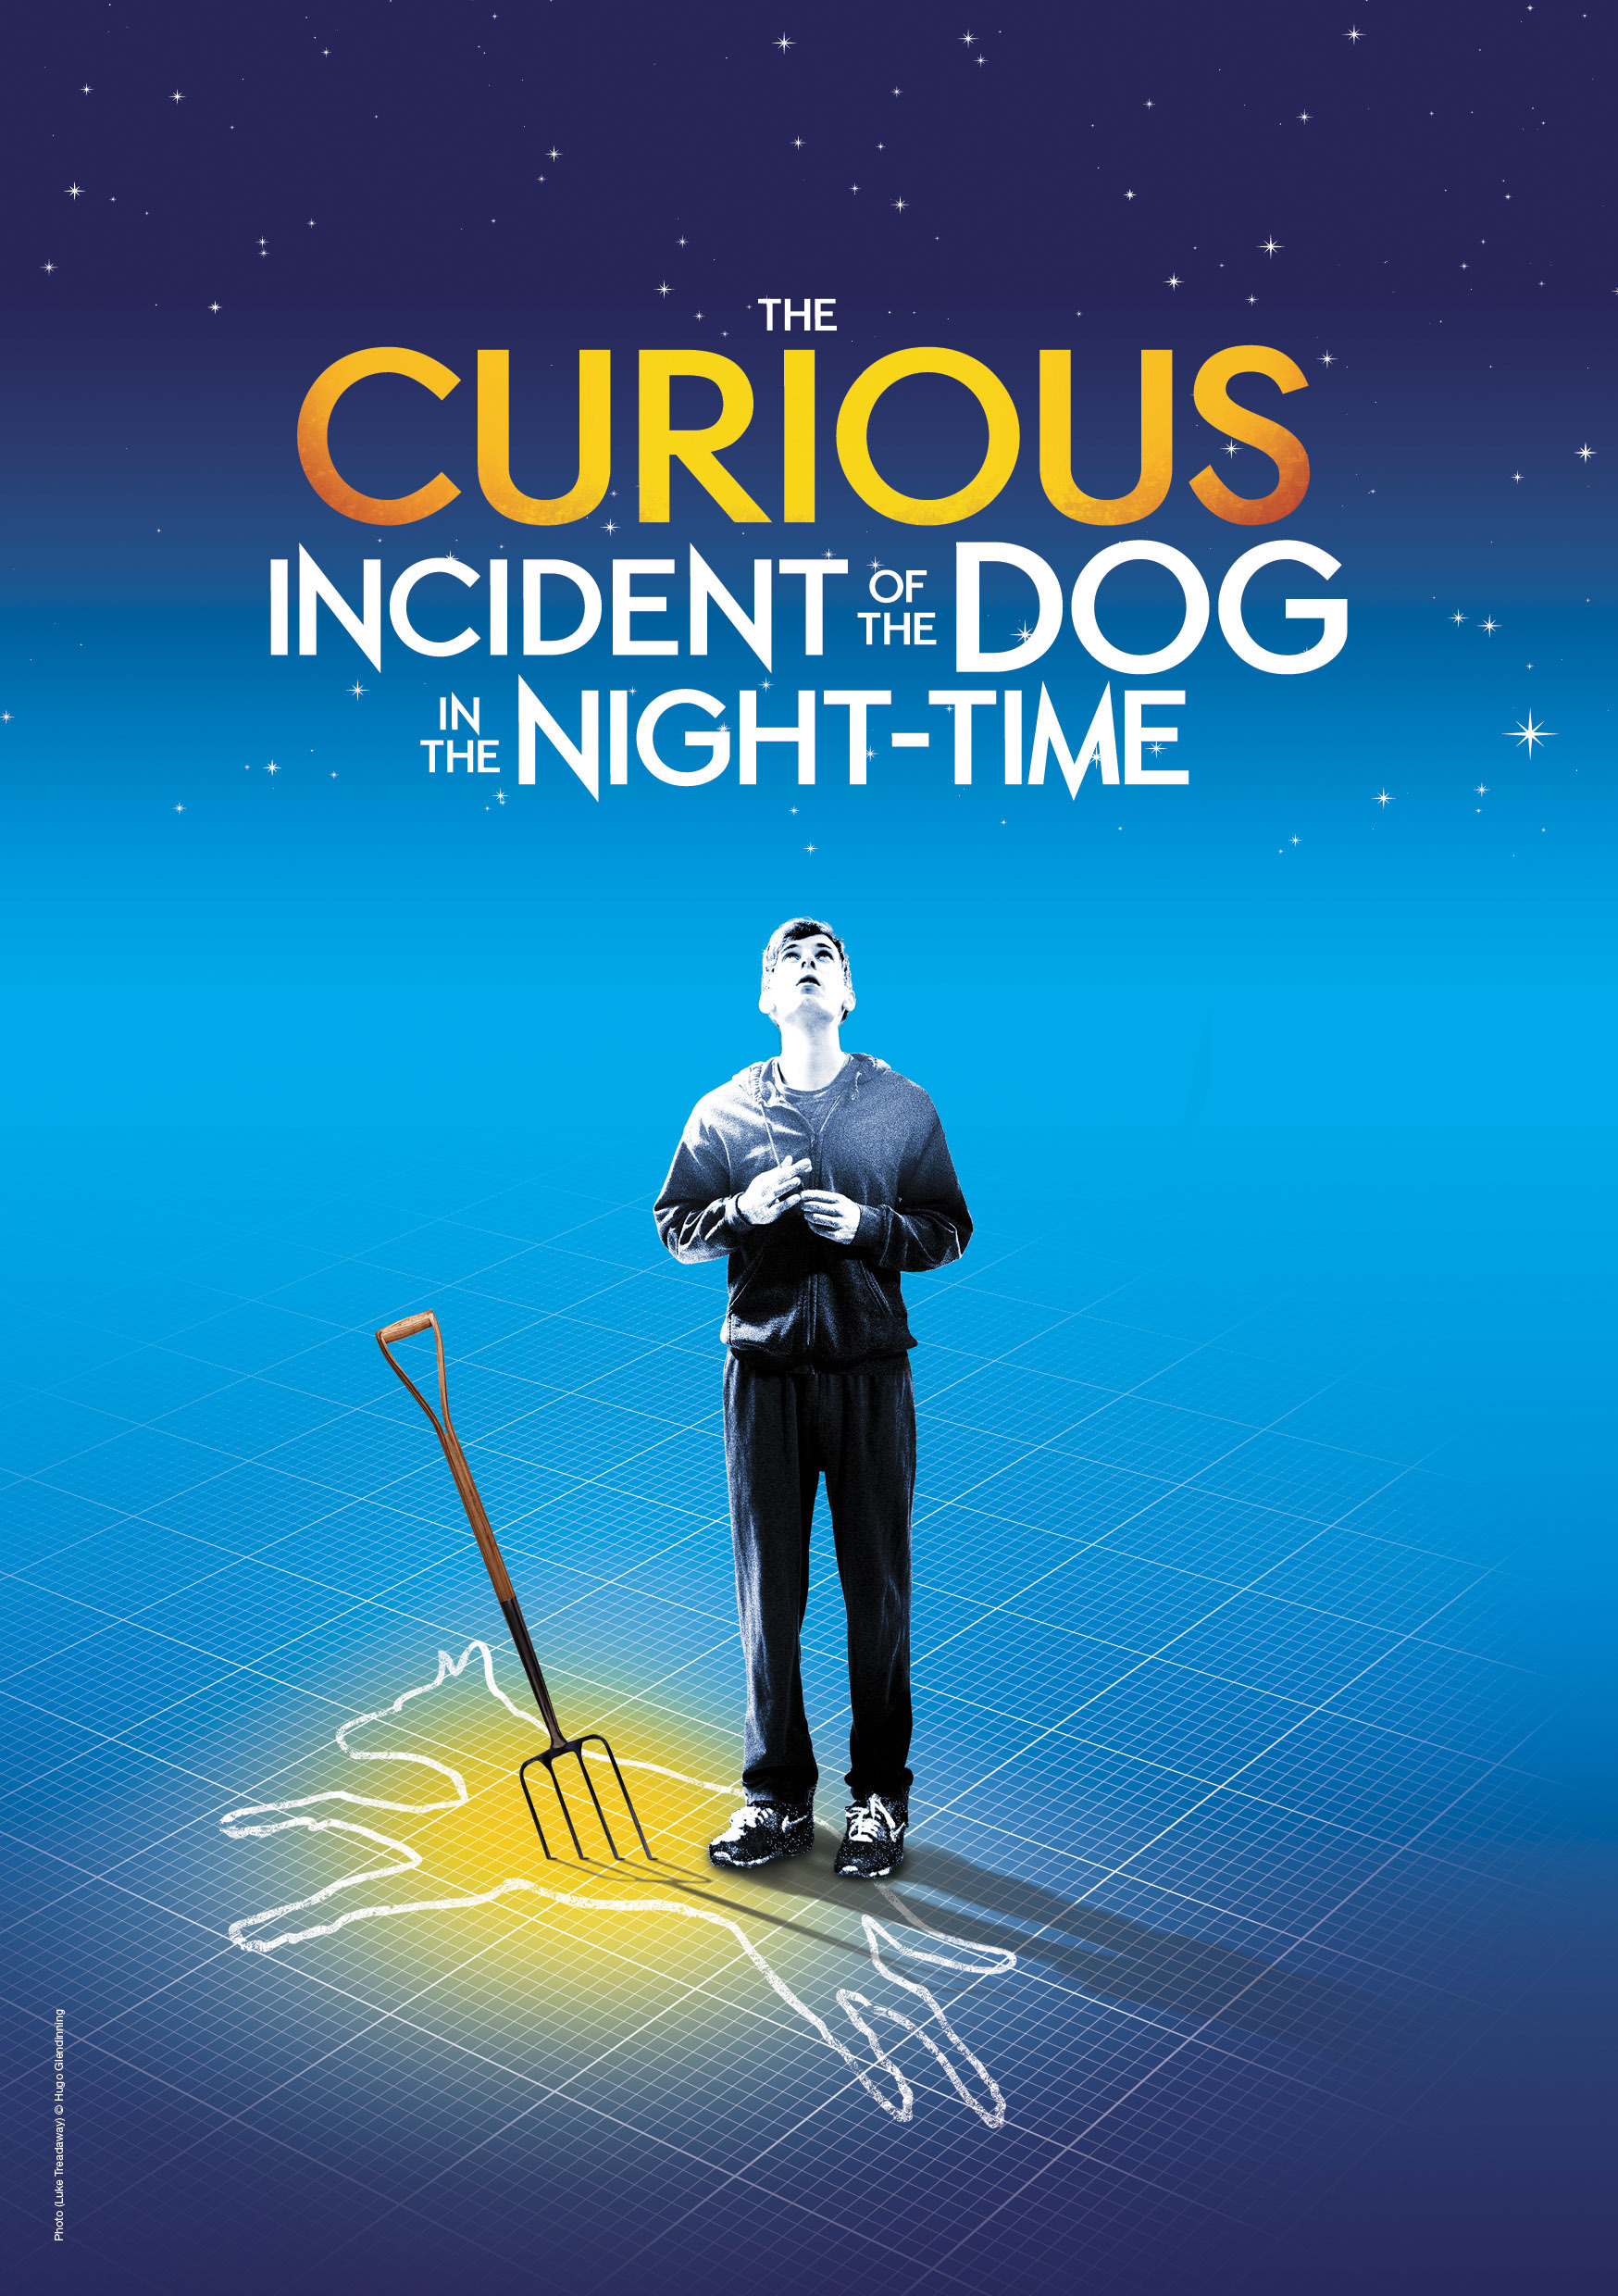 the curious case of the dog Buy official the curious incident of the dog in the night-time 2018 tickets for adelaide entertainment centre theatre & his majesty's theatre, perth get your tickets from ticketek.